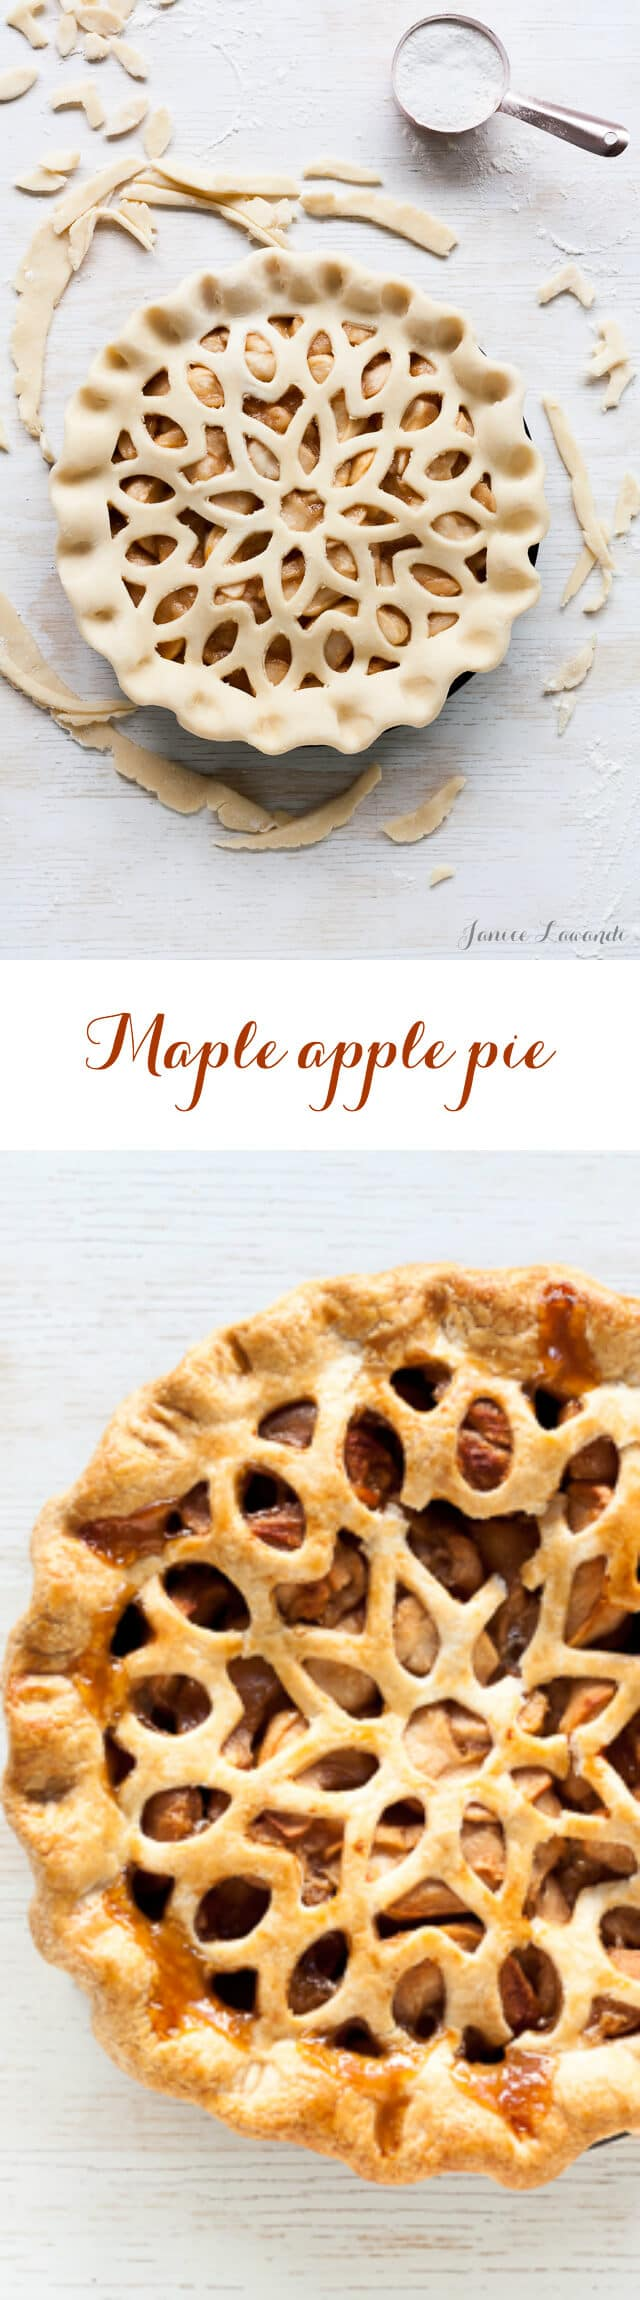 Maple apple pie made with maple roasted apples and an all-butter crust